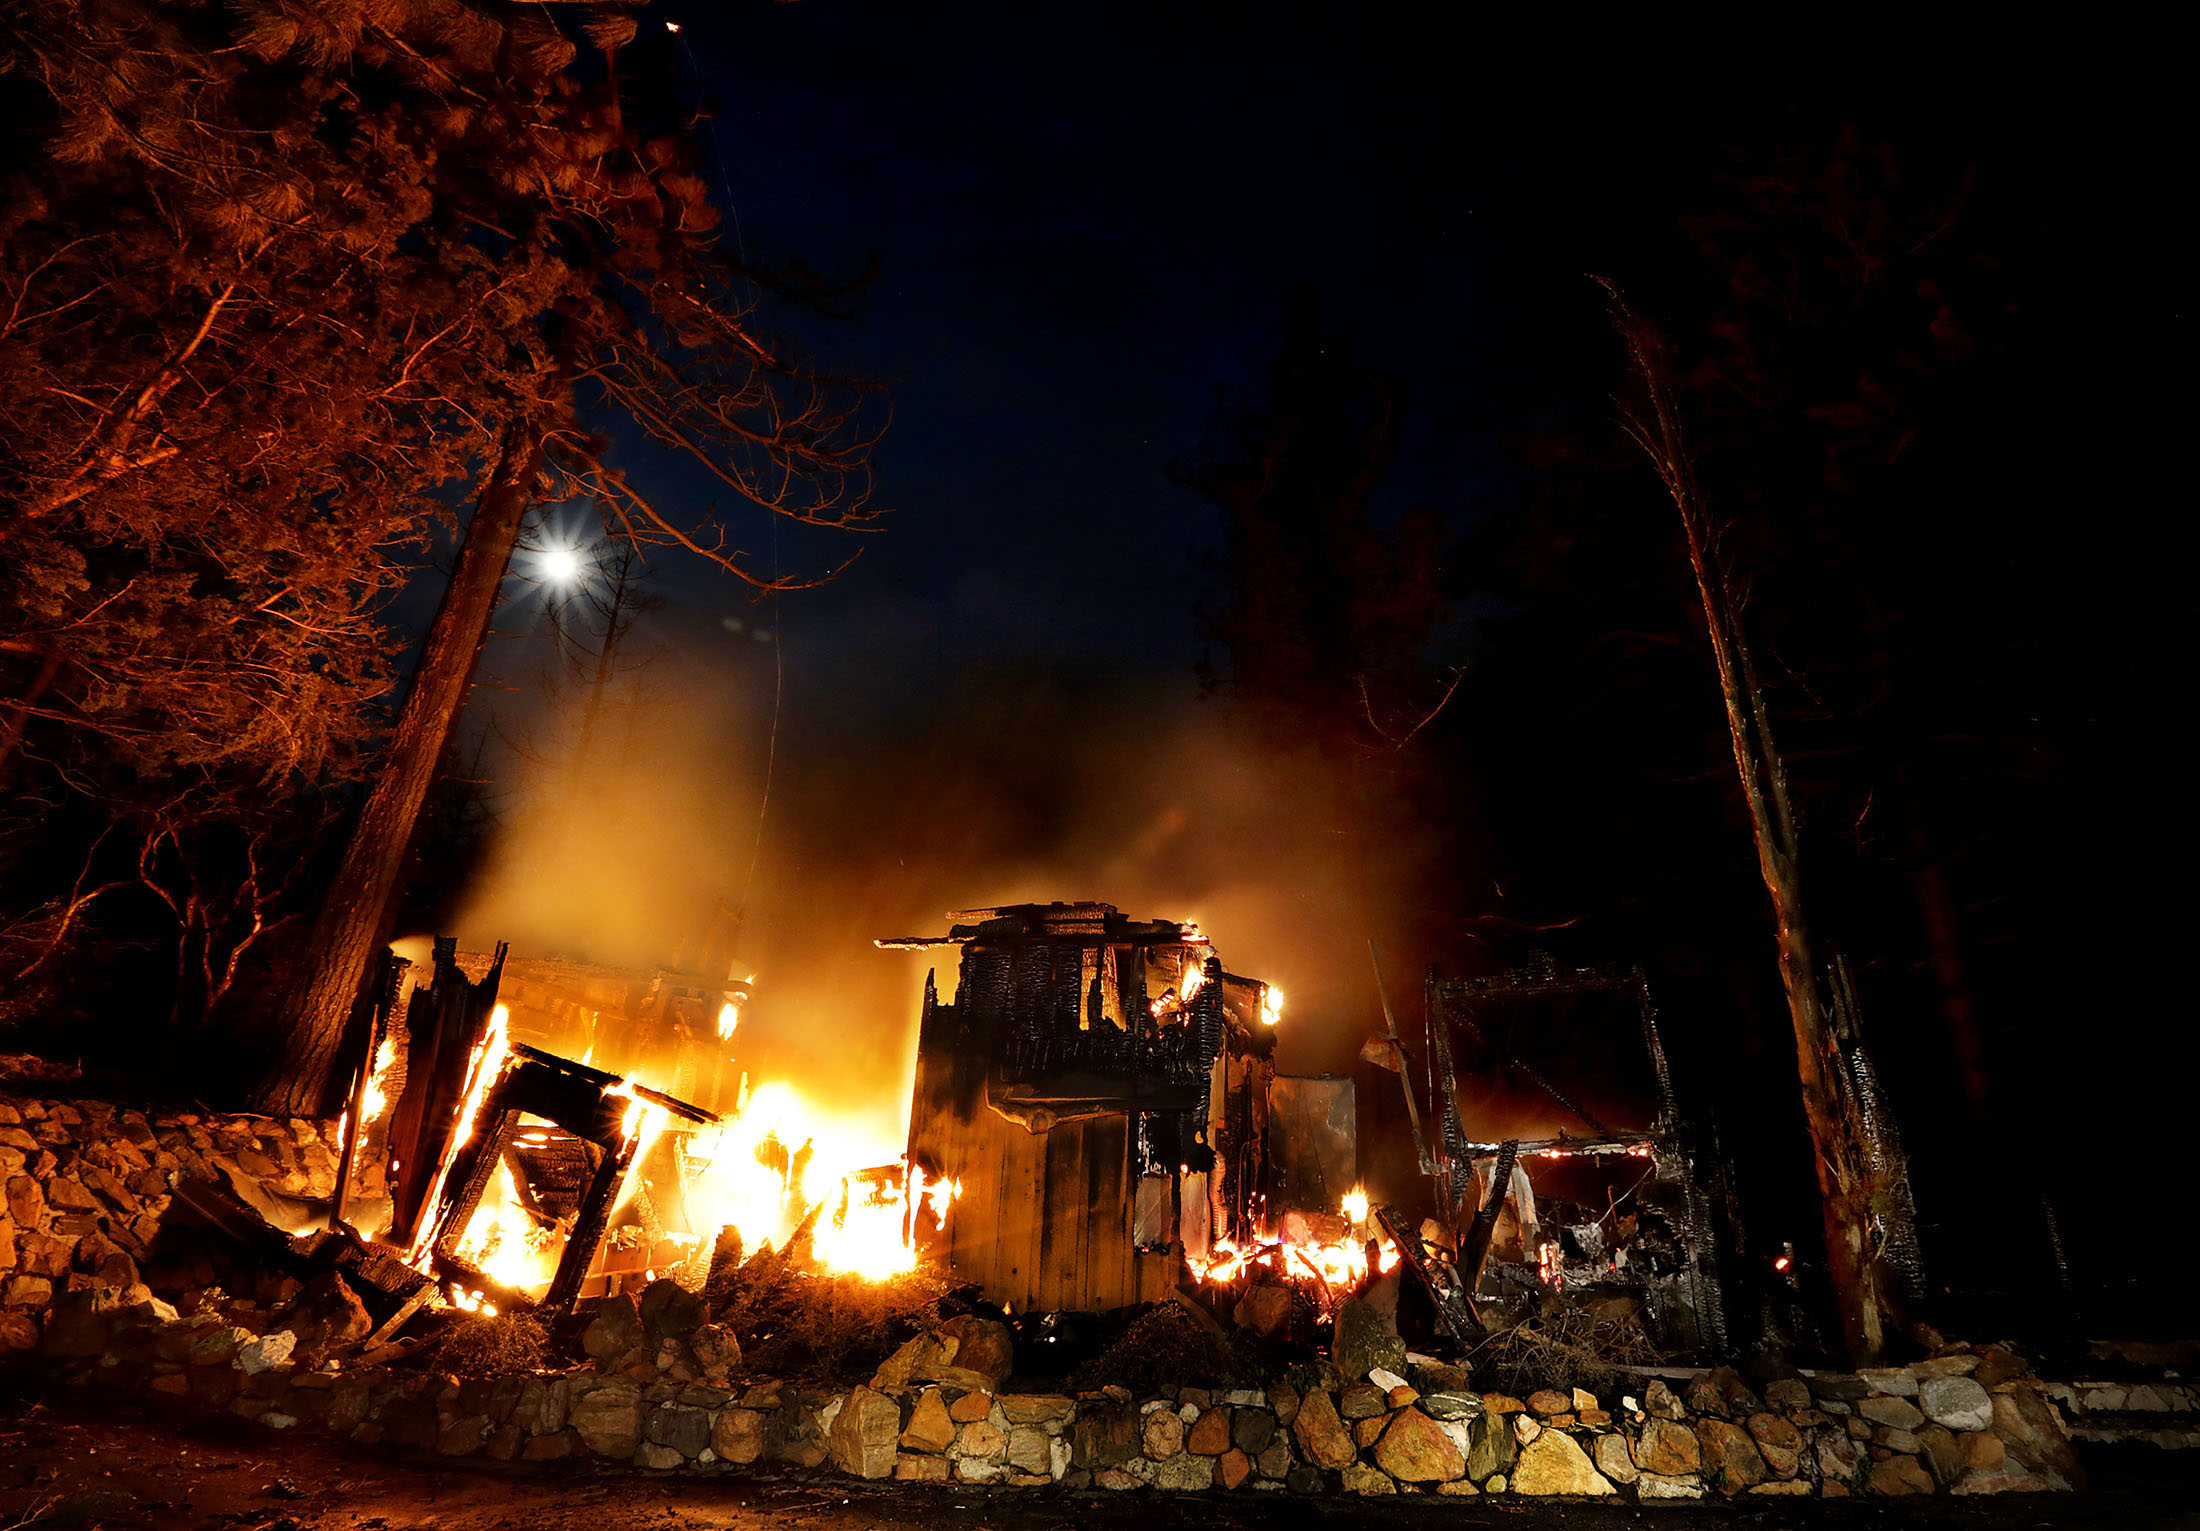 A home on Deer Foot Lane burns into the night on Deer Foot Lane as the Cranston fire slows in the cool night air after during more than 3,500 acres in the San Bernardino National Forest in Idyllwild on Wednesday, July 25, 2018.